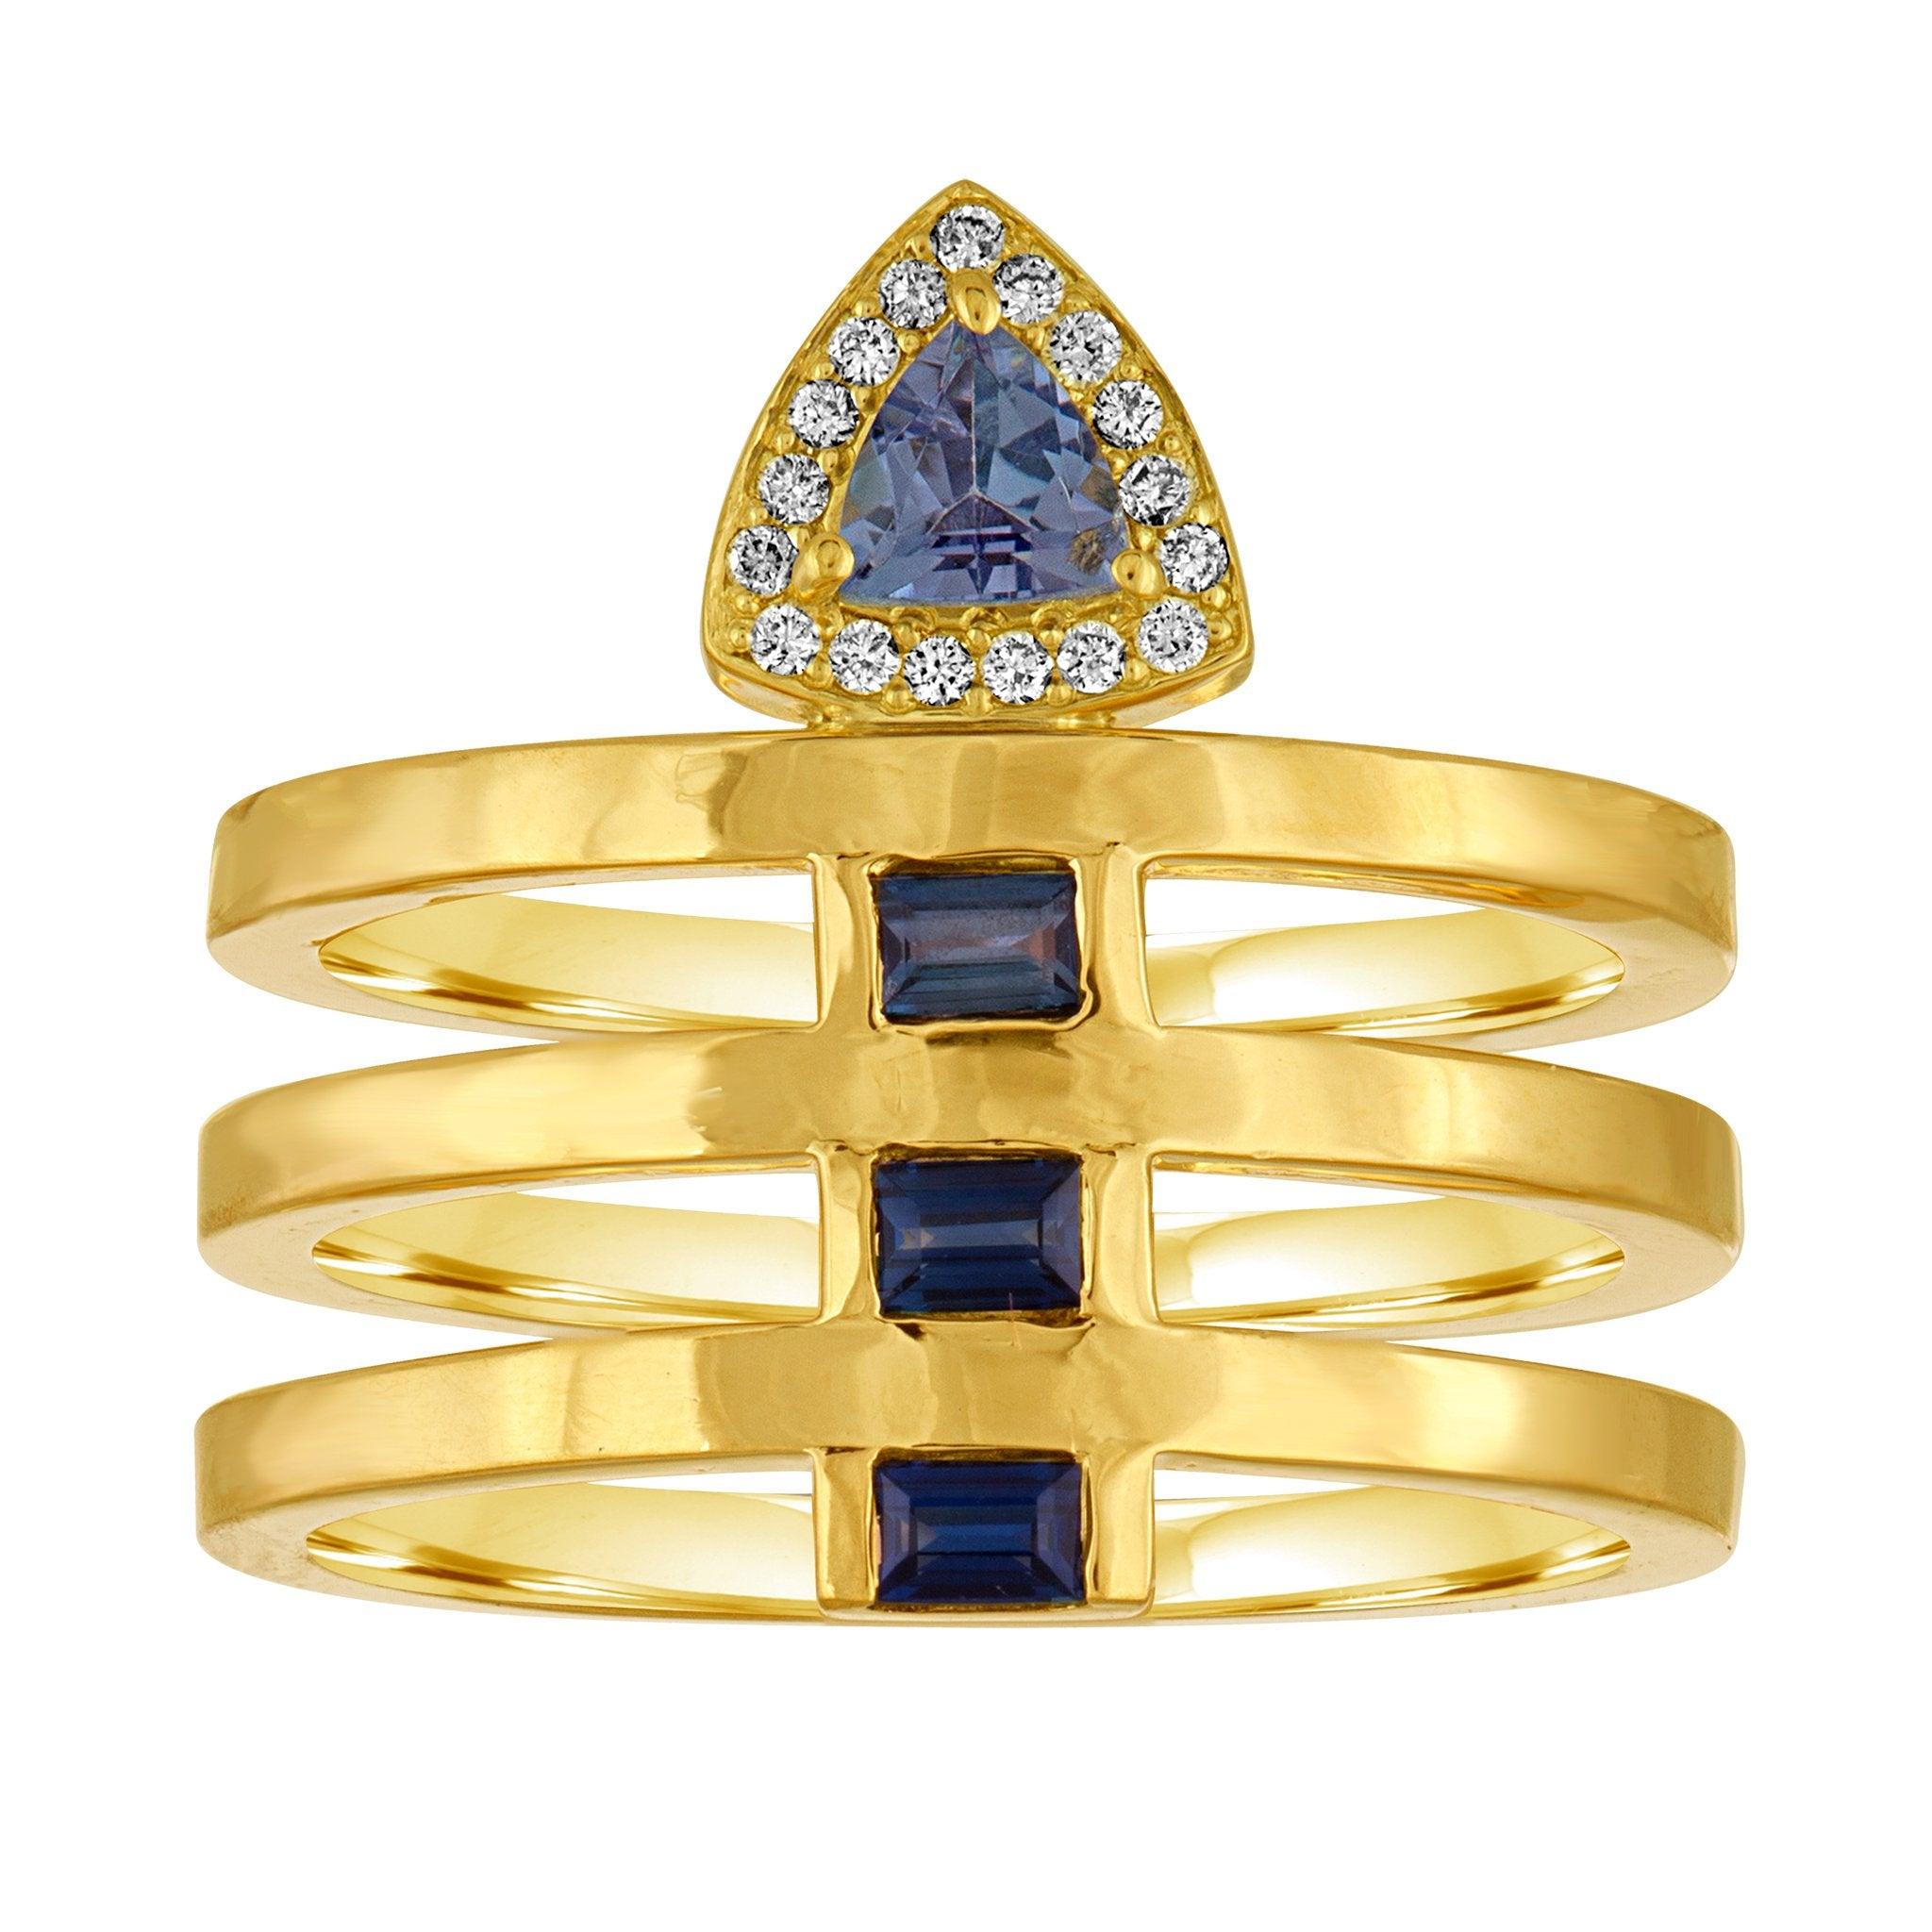 Lara Ring: 18k Gold, Tanzanite Trillion, Blue Sapphire Baguettes, Diamonds